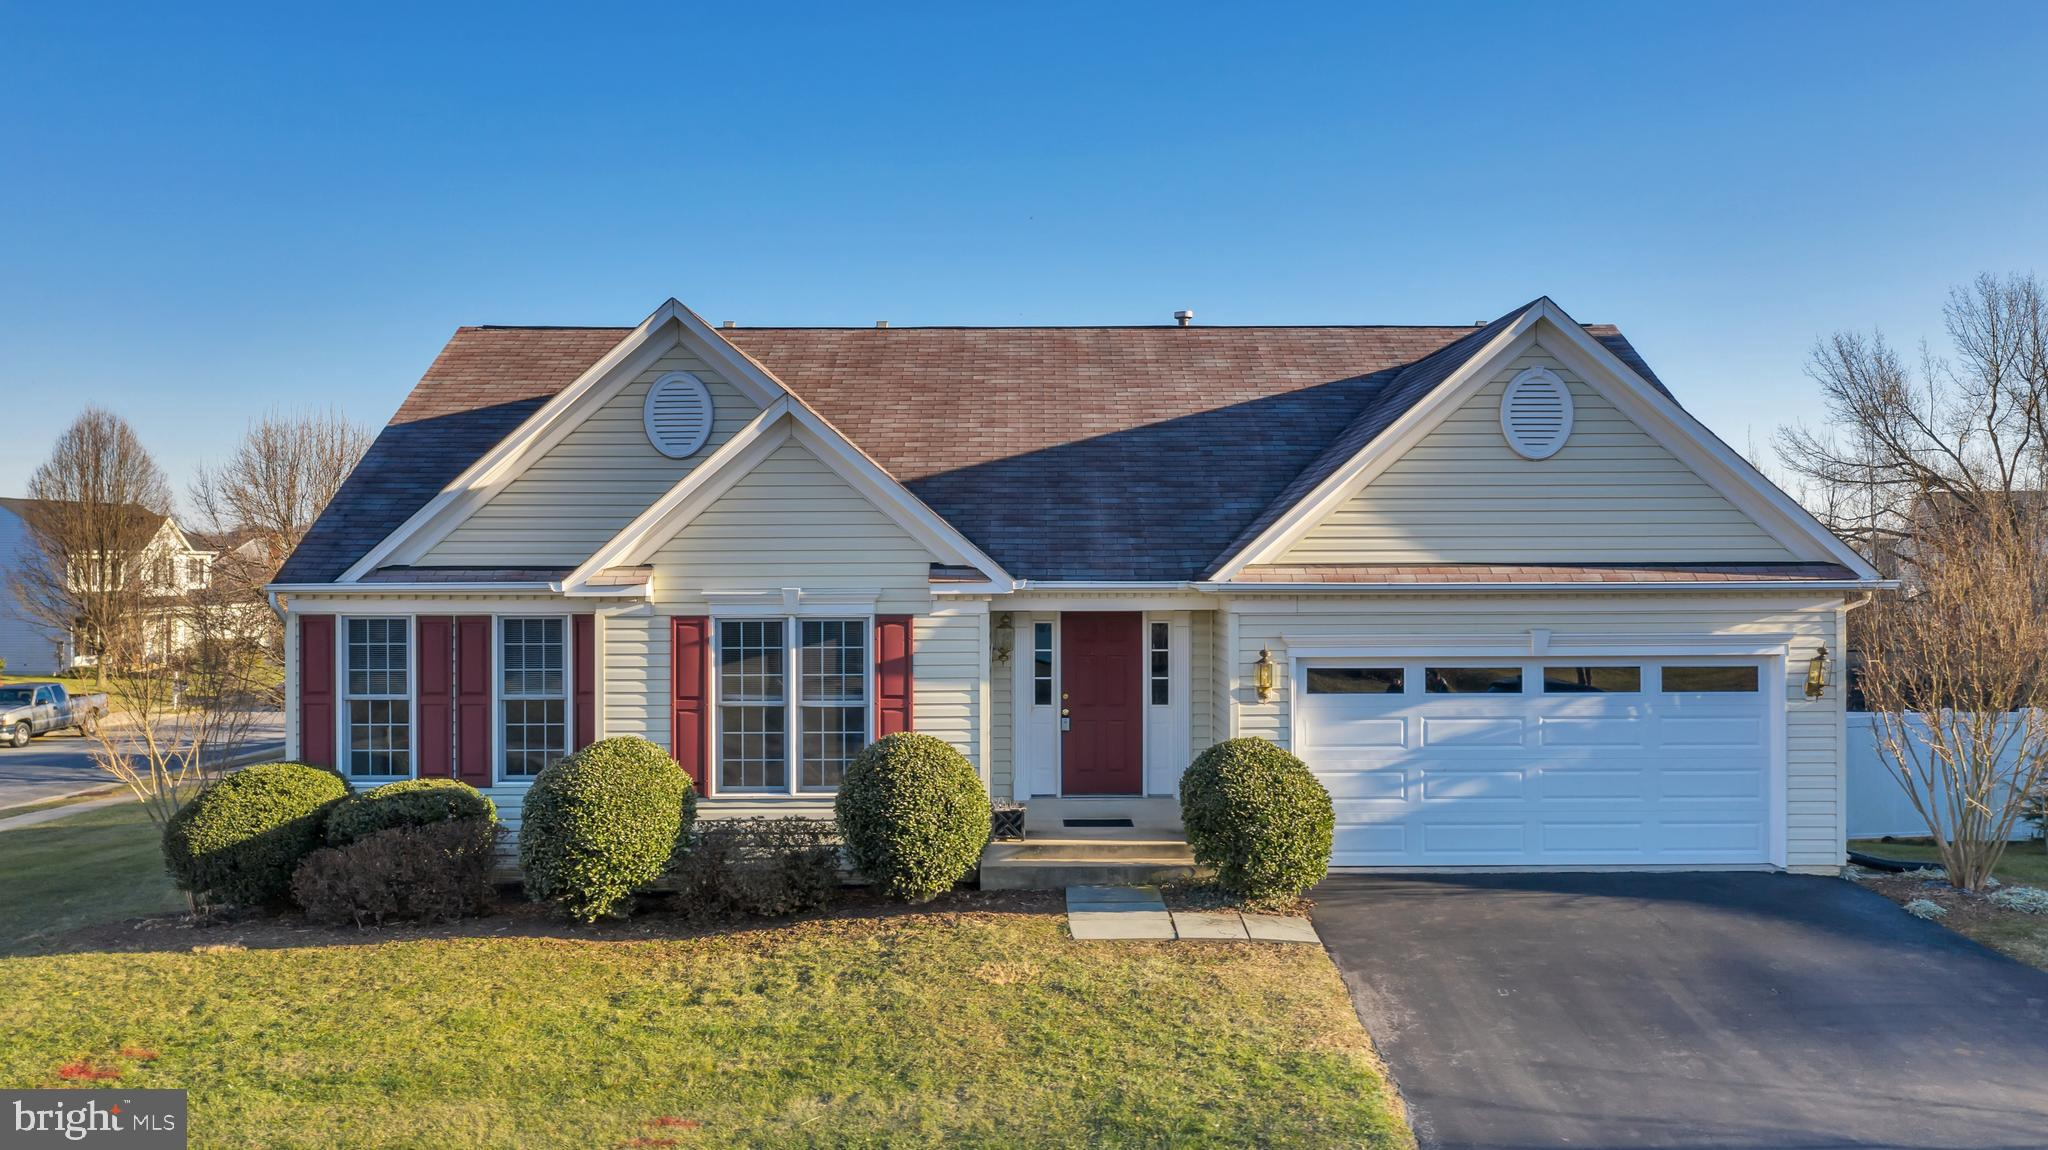 4301 FERRY HILL COURT, POINT OF ROCKS, MD 21777